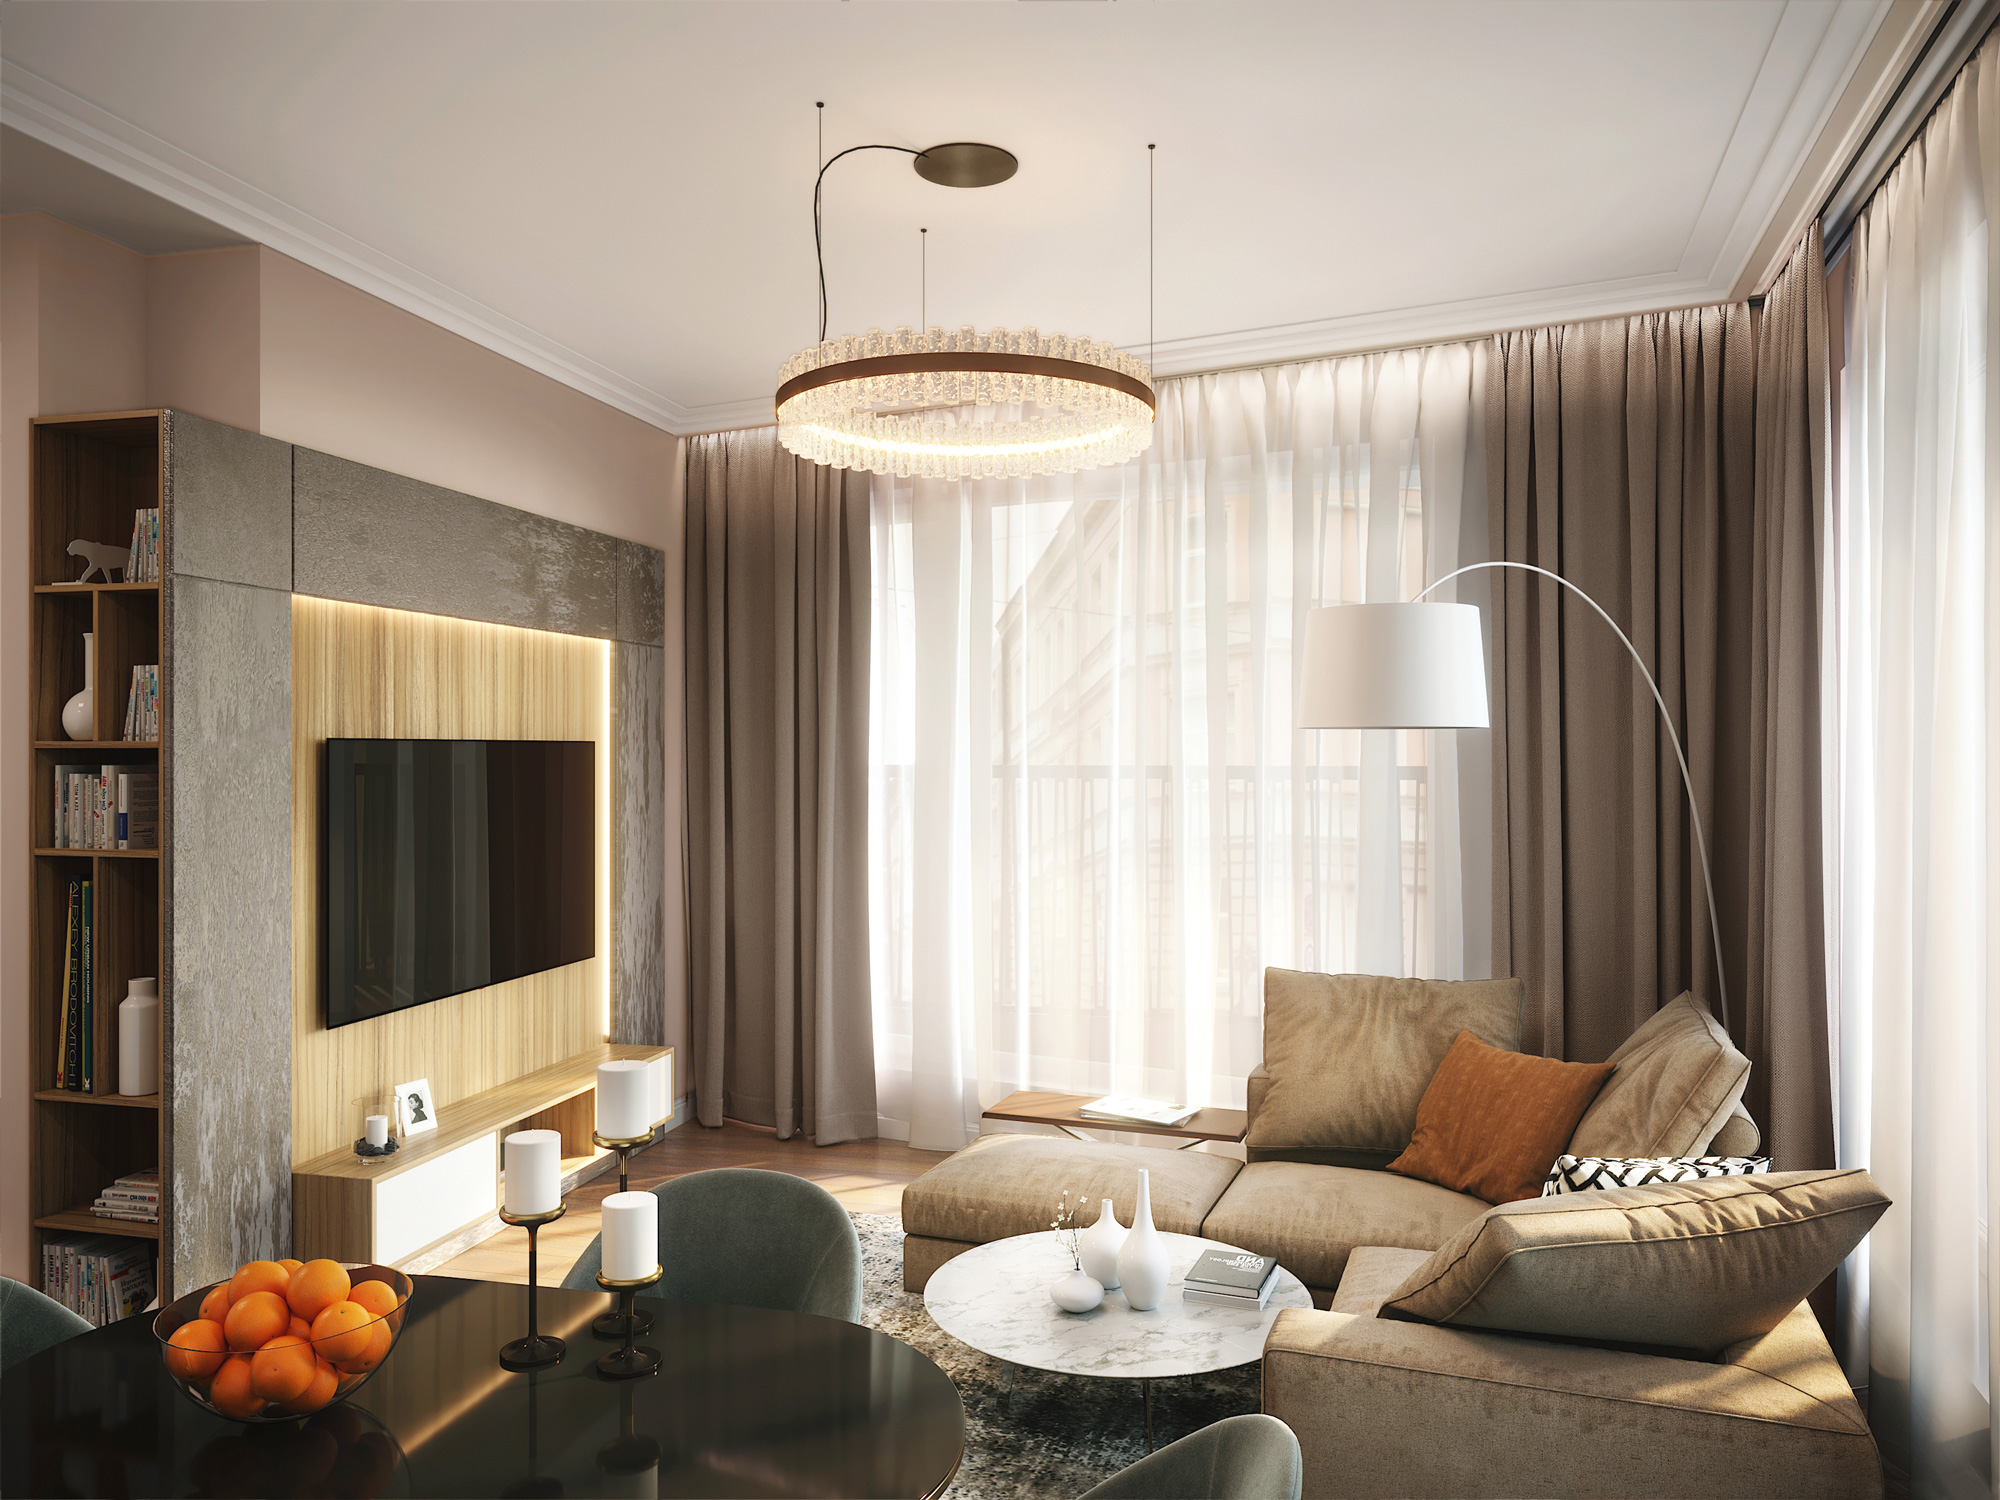 Mednieku 5 3d interior render visualization 05